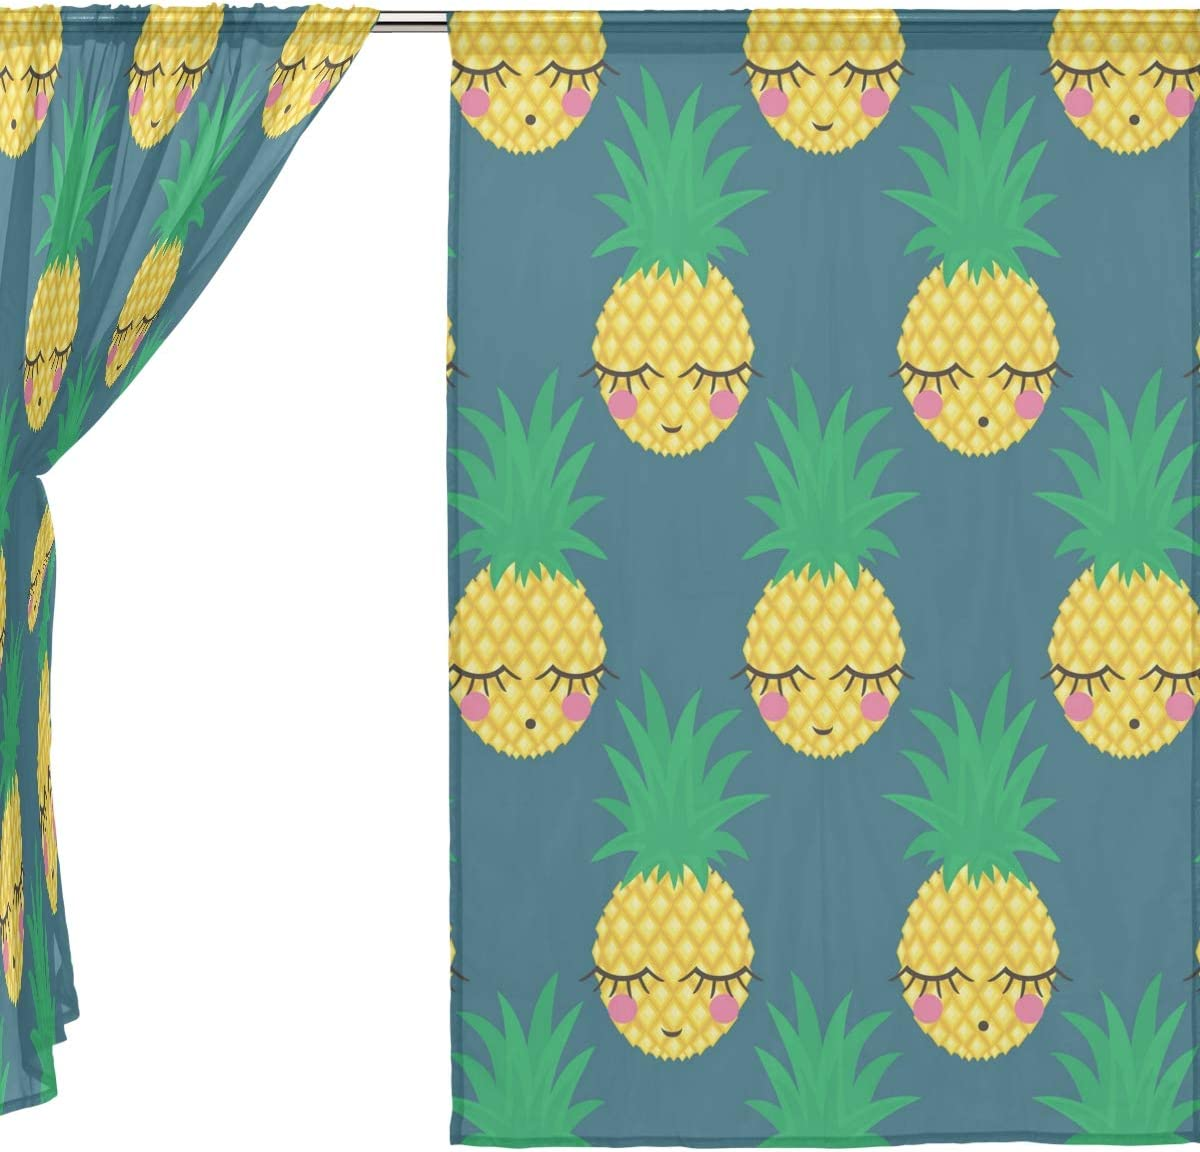 Vantaso Sheer Curtains 84 inch Long Cute Pineapple Emoji for Kids Girls Bedroom Living Room Window Decorative 2 Panels